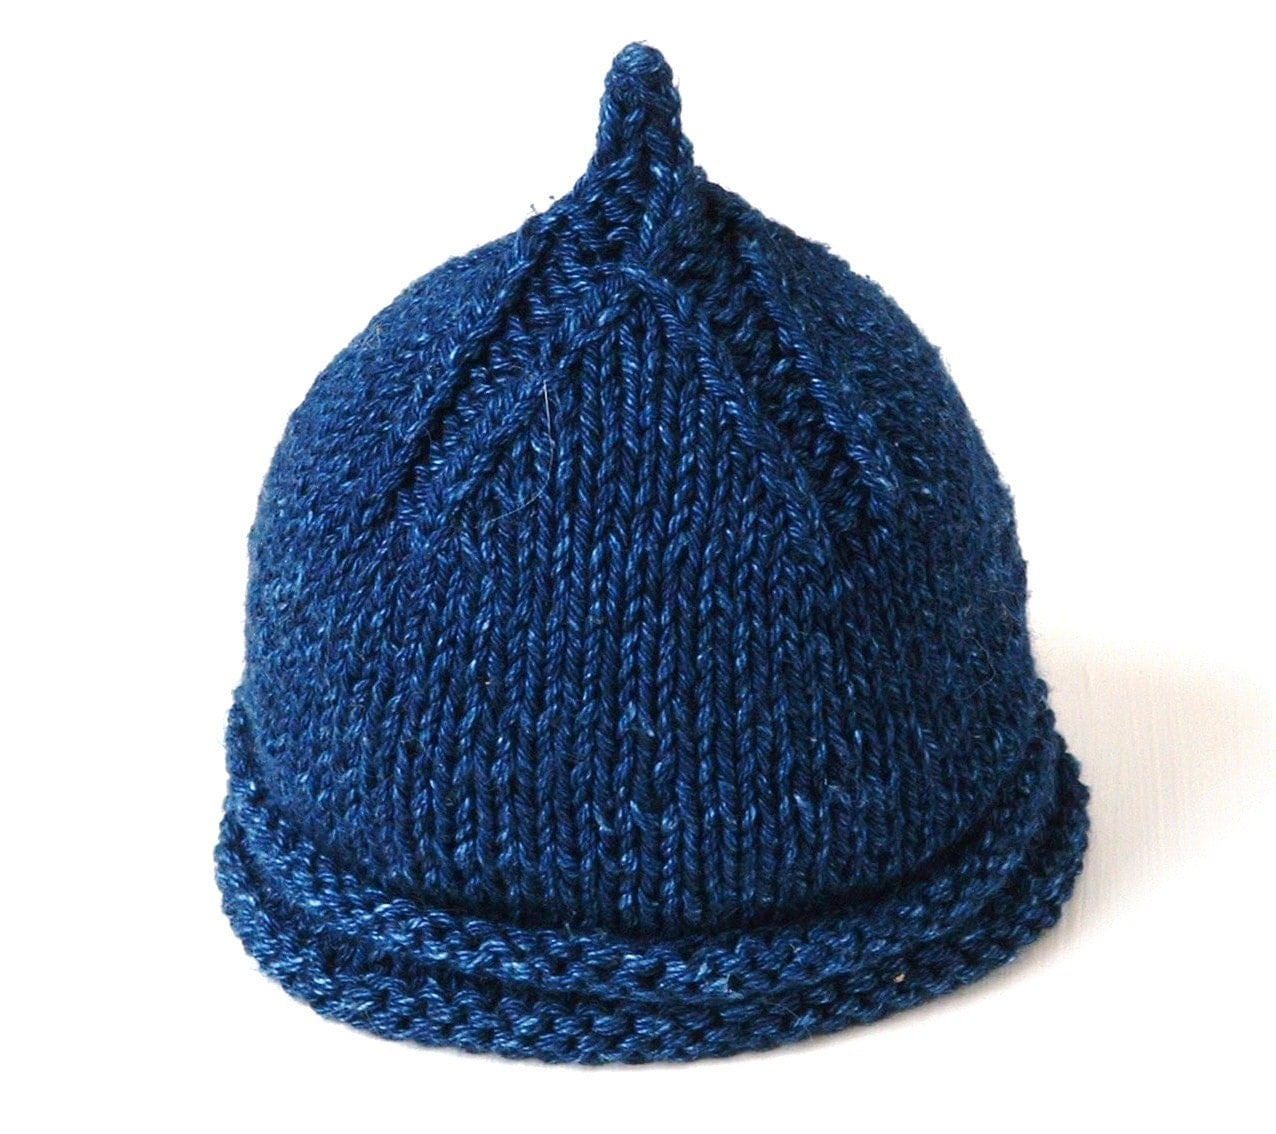 Knitting Patterns For Youth Hats : KNITTING PATTERNS baby / kids hats by rocketclothinglondon